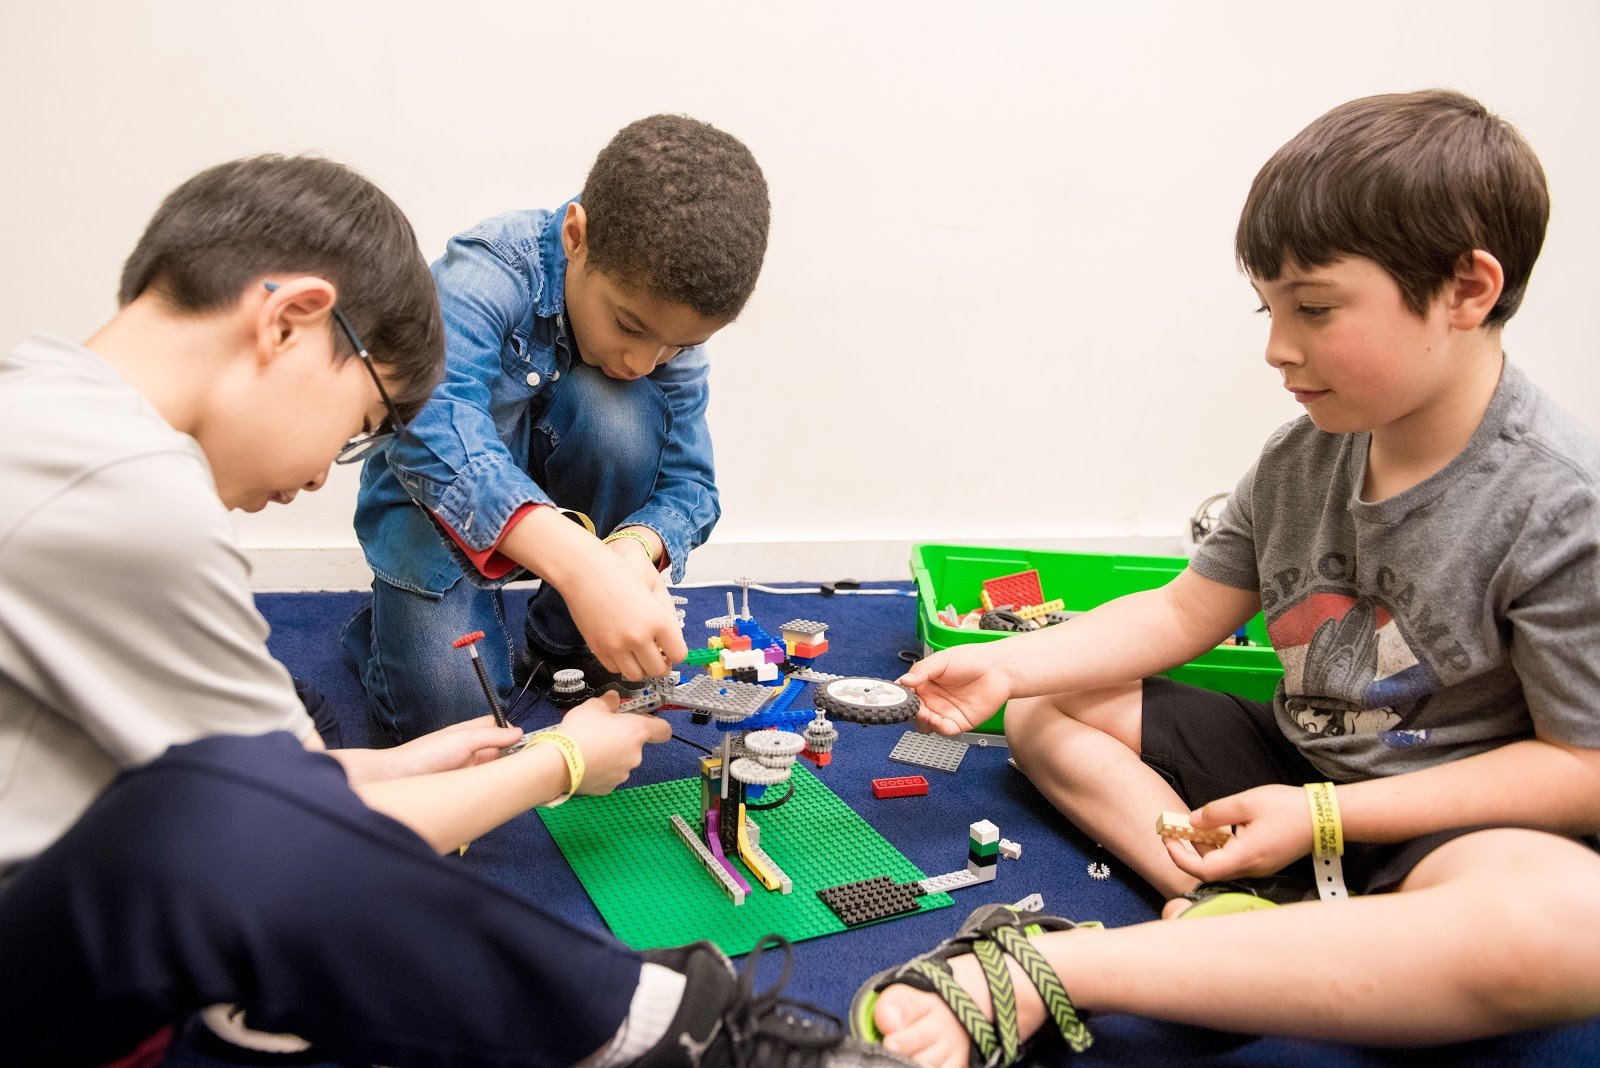 STEM summer camp robofun may 2019 open house.jpg